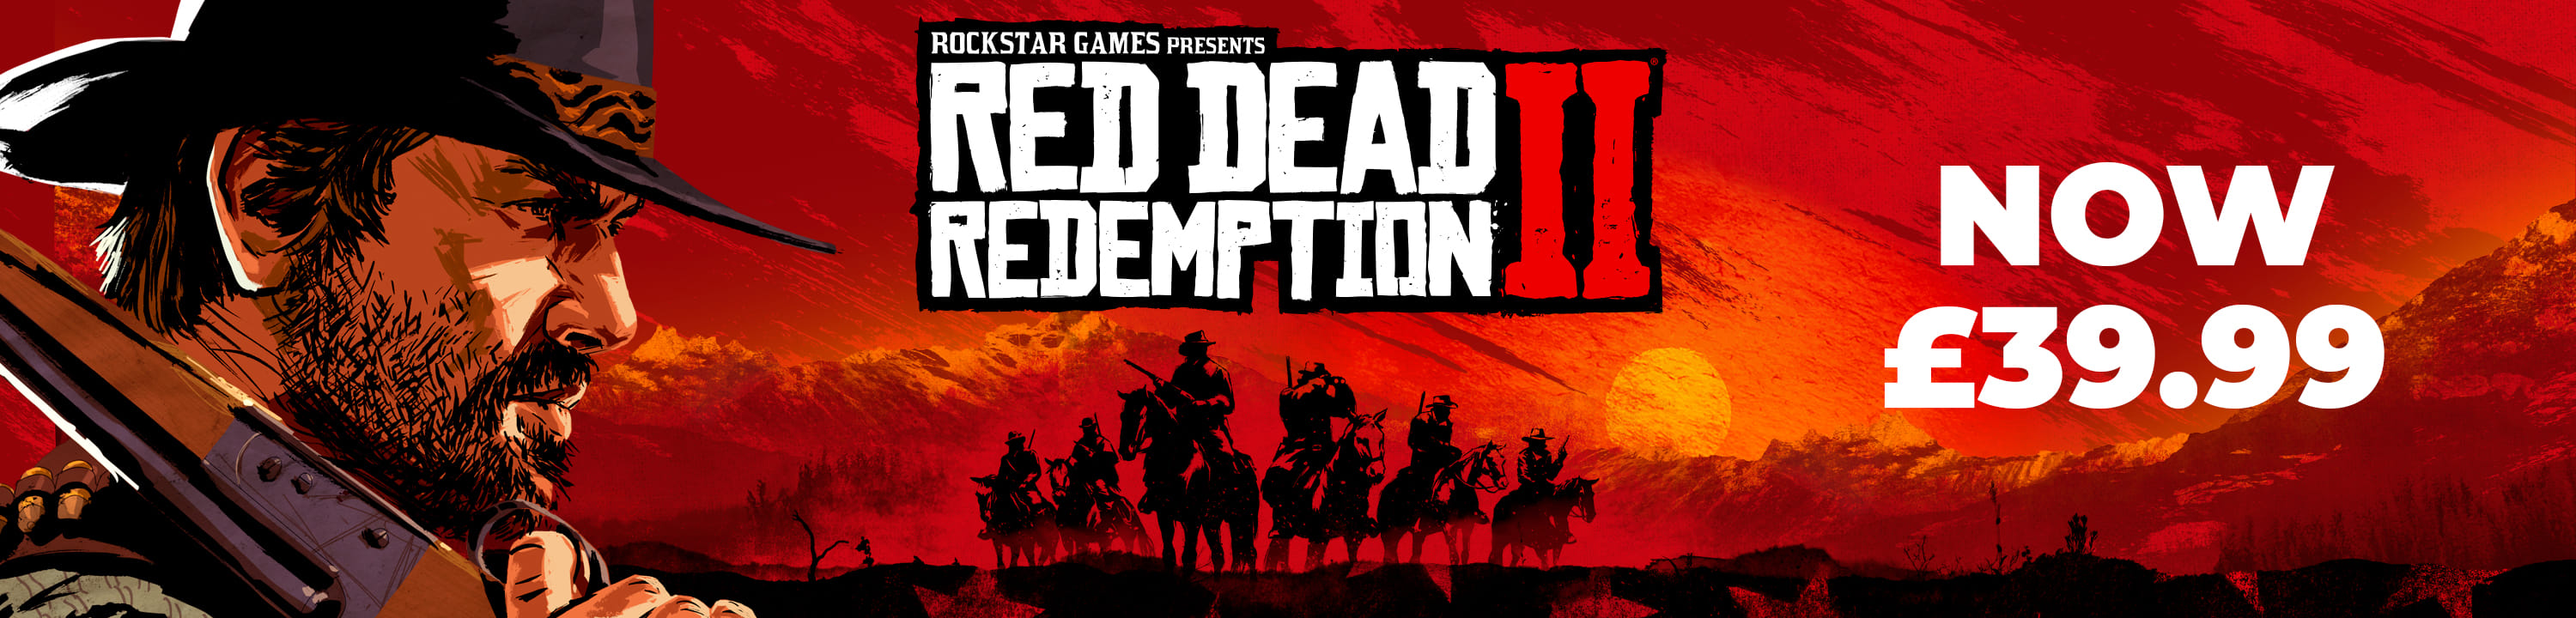 Red Dead Redemption 2 - Limited Time Offer